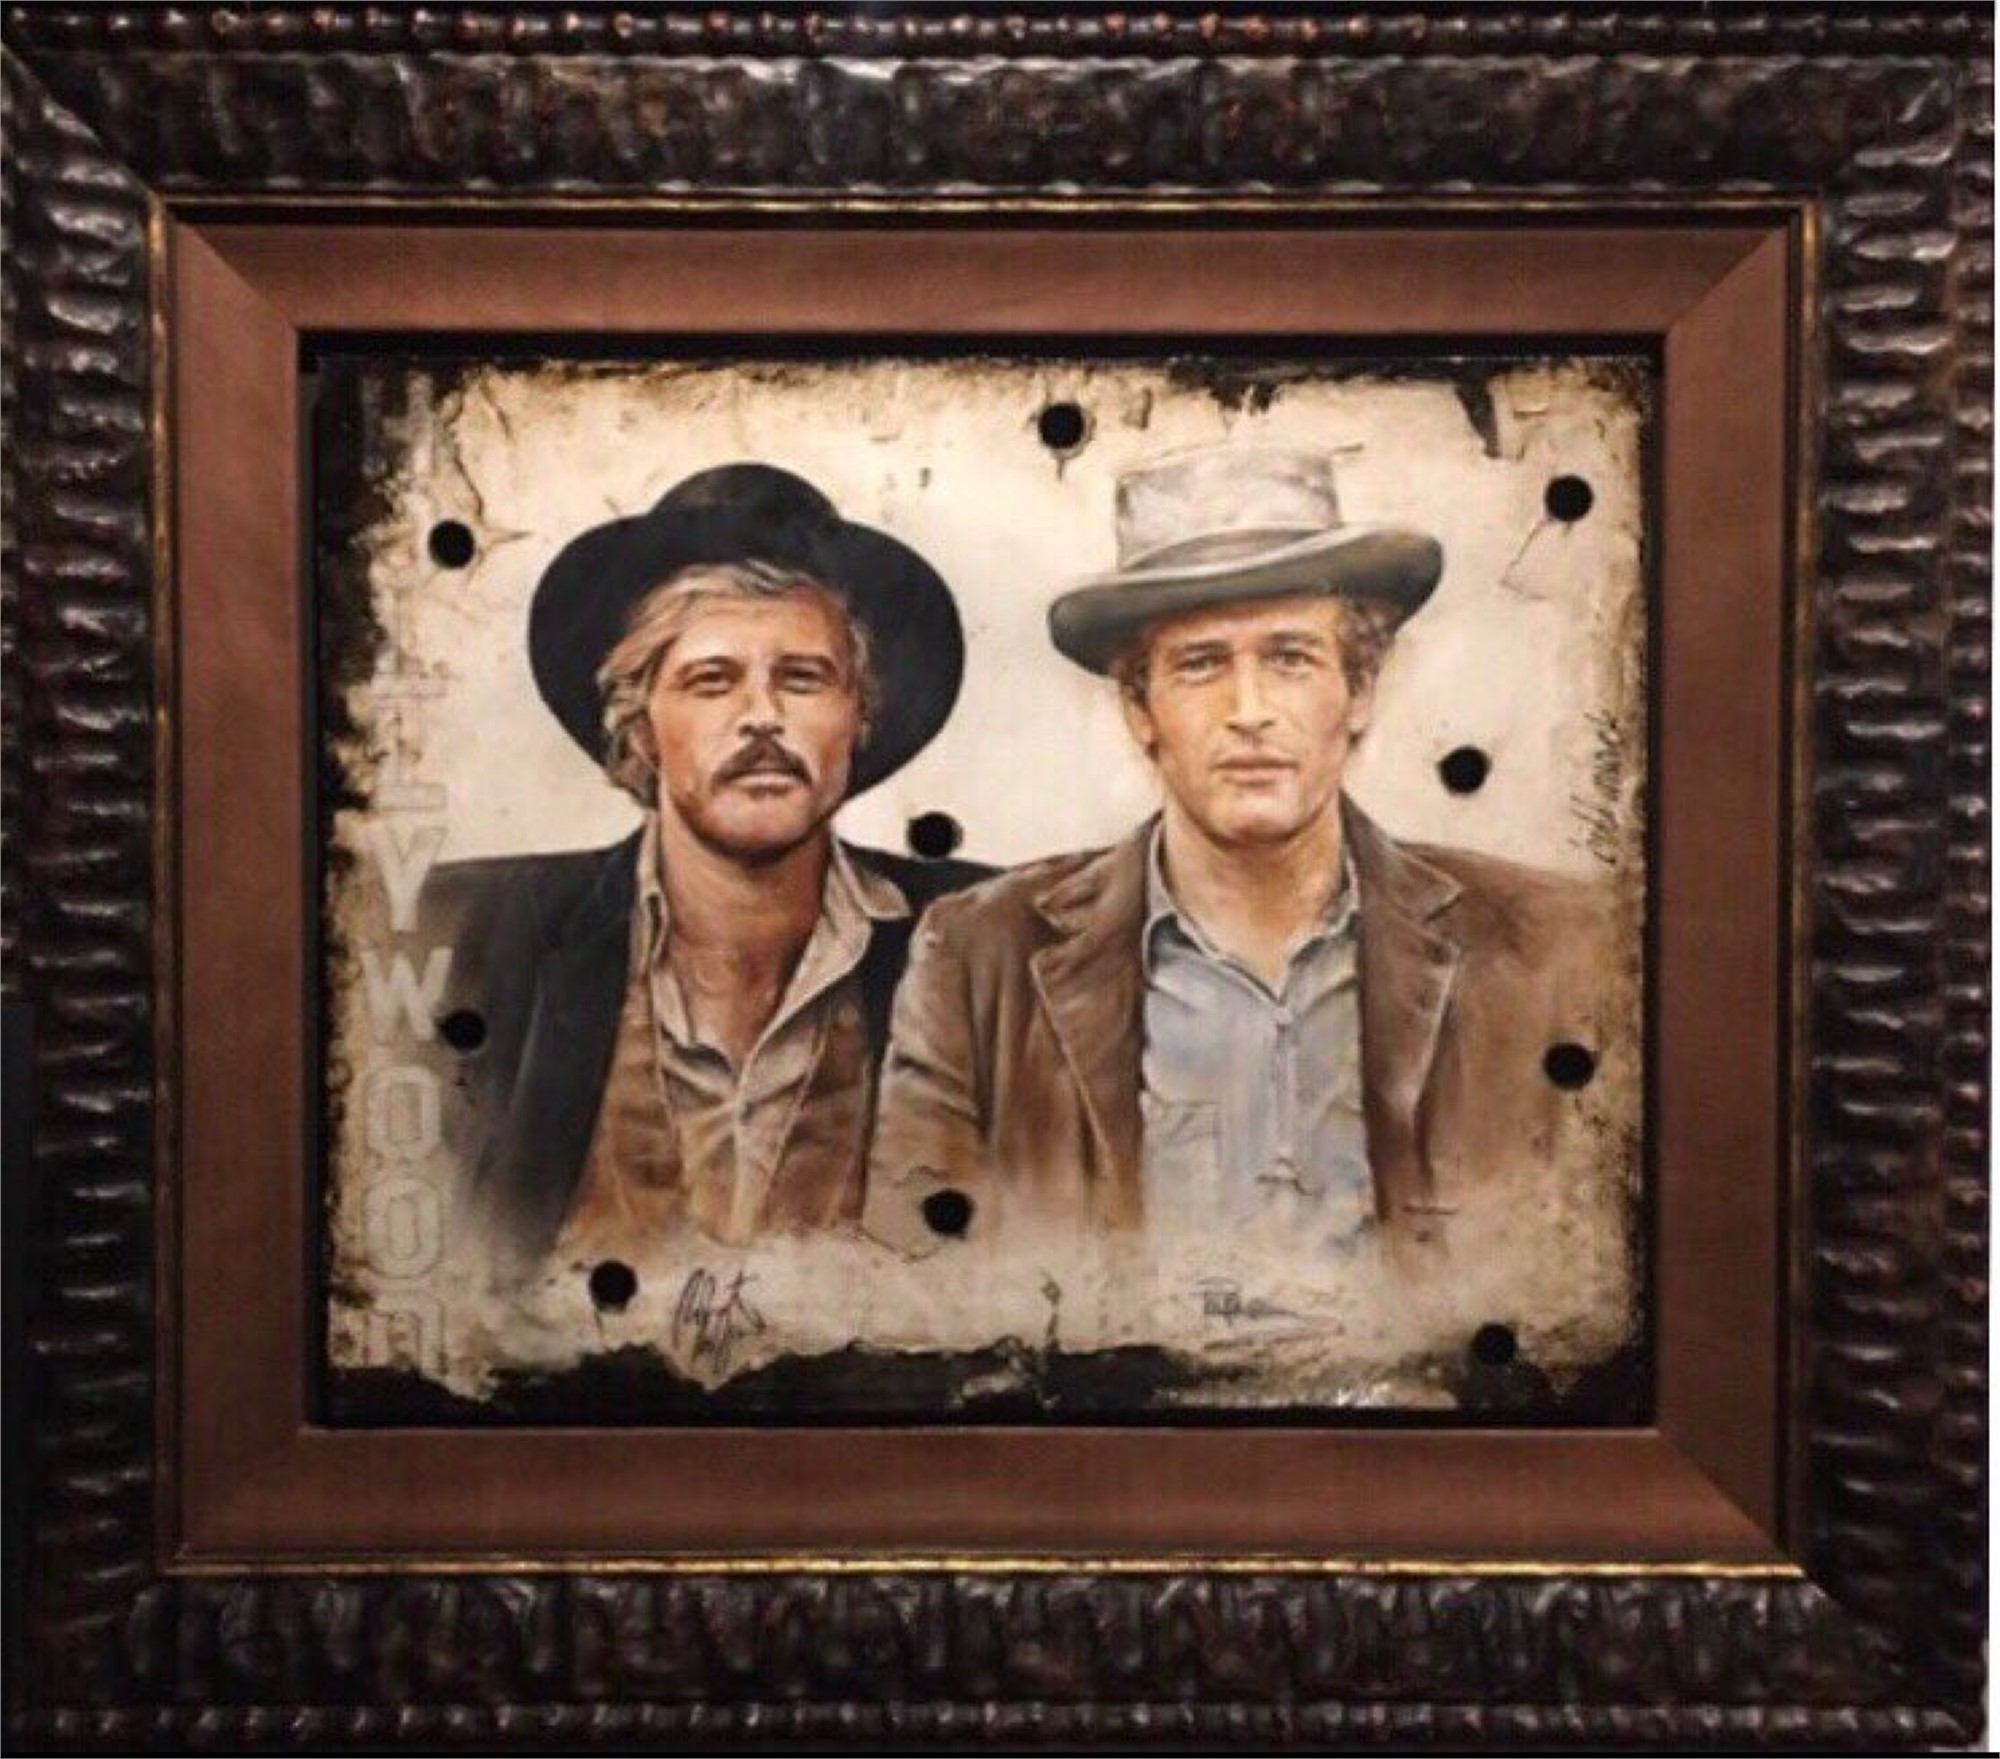 """Butch & The Kid"" Paul Newman & Robert Redford by Bill Mack"